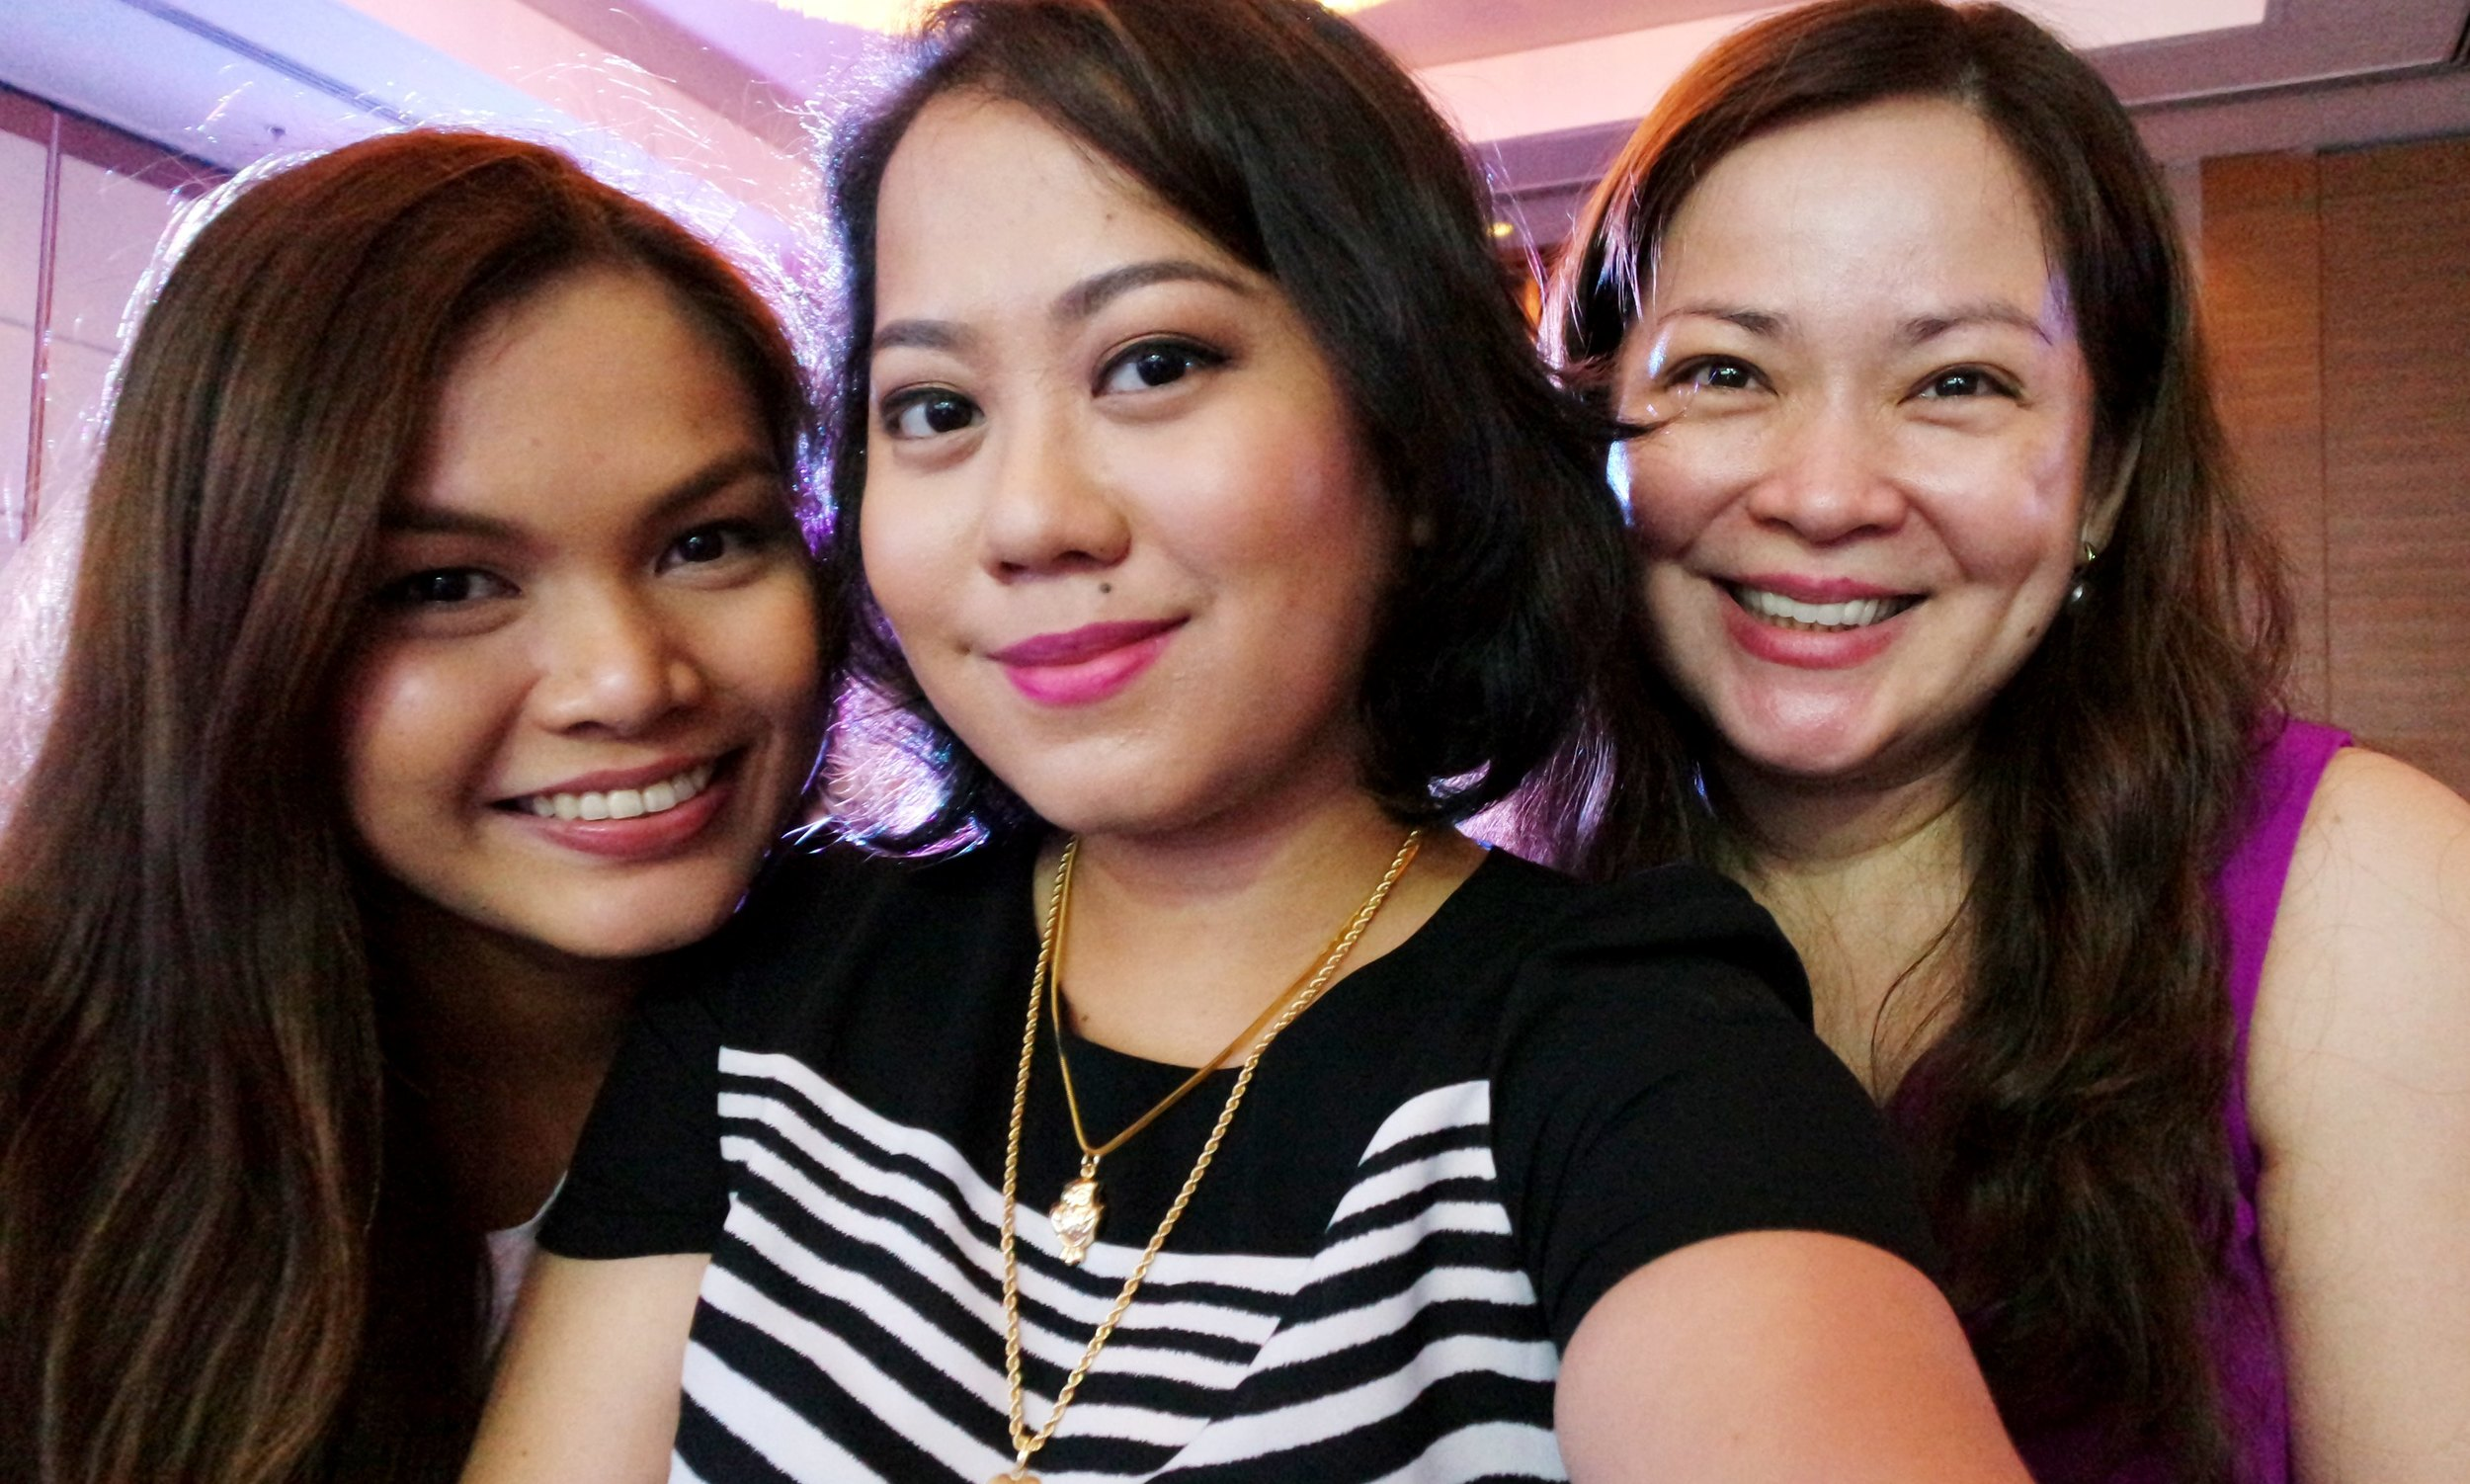 Martha, myself, and Raisa Mislang, who is an executive at  GlaxoSmithKline  (the makers of Physiogel). Raisa is always so chic and outspoken, I love her posts on Facebook and Instagram!